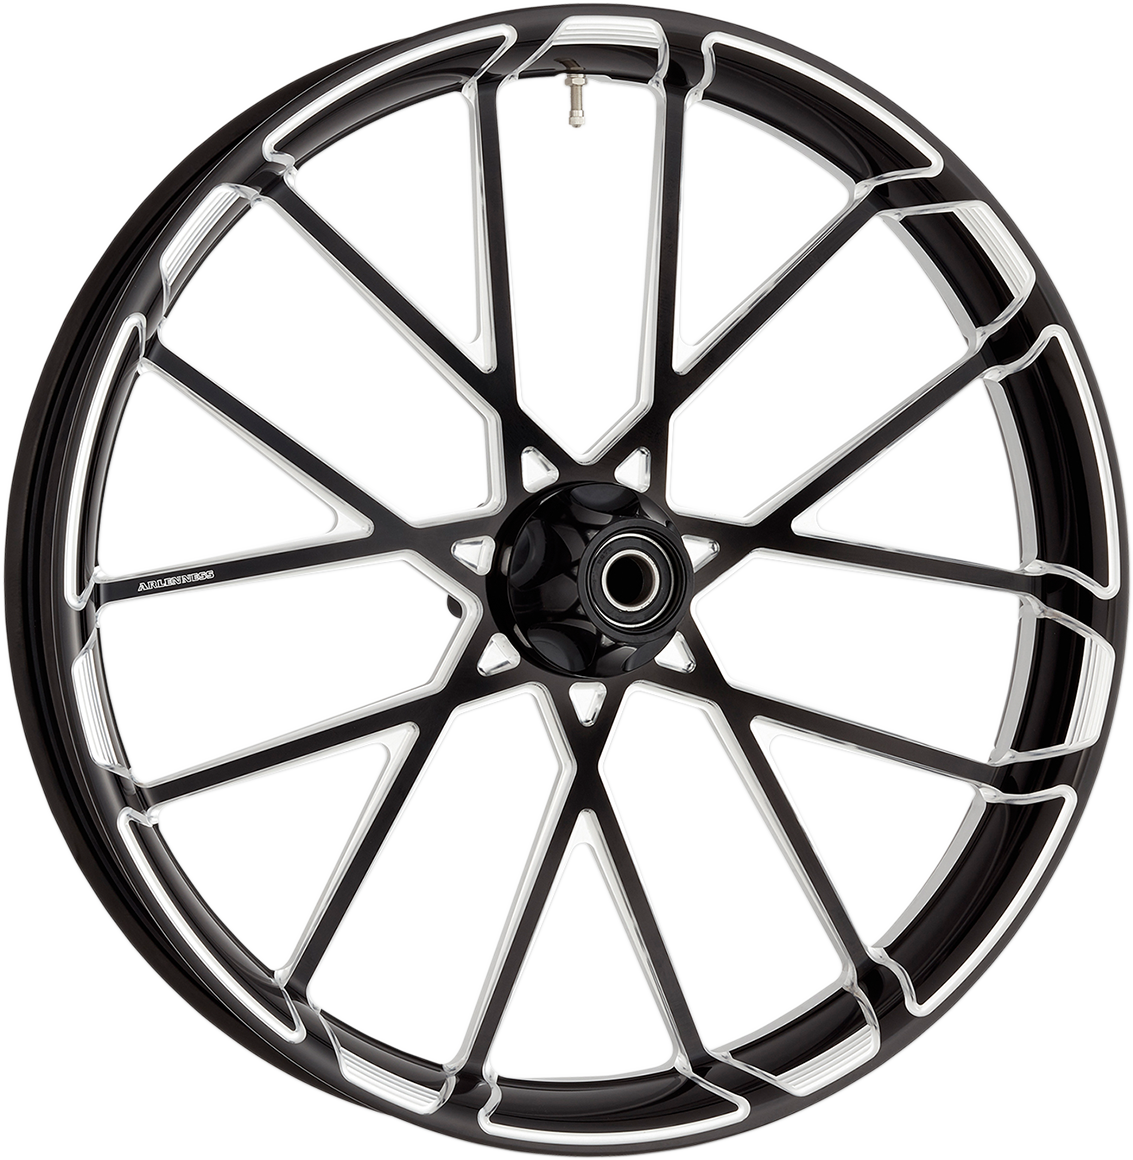 "Arlen Ness Black Procross 21"" x 3.5"" ABS Front Wheel for 08-18 Harley Touring"